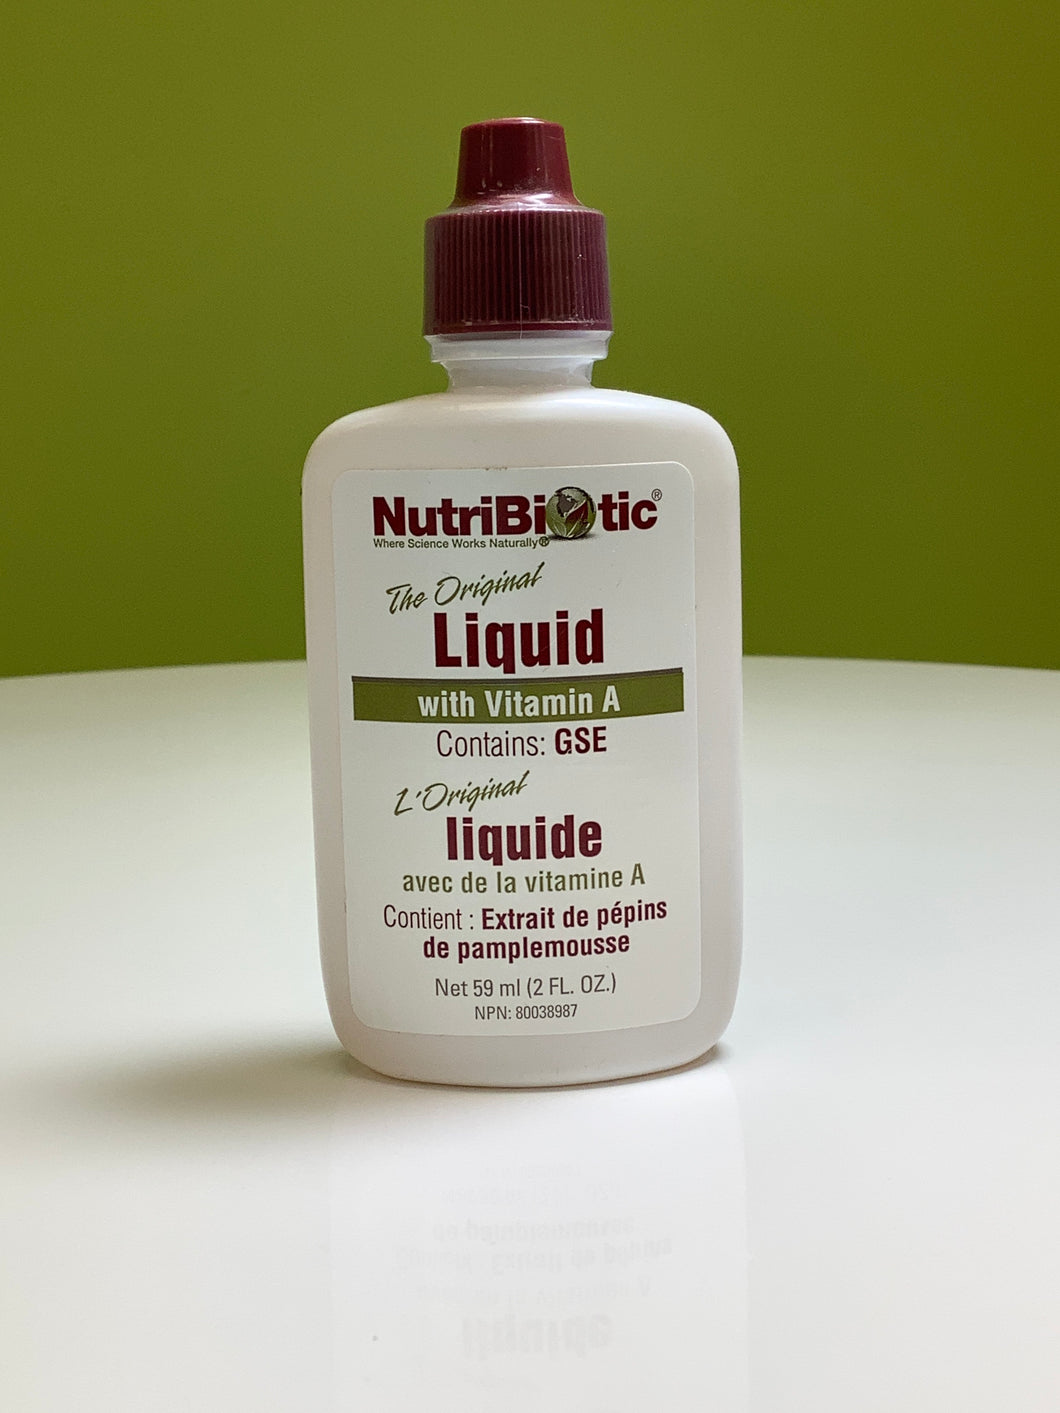 NutriBiotic The Original Liquid with Vitamin A